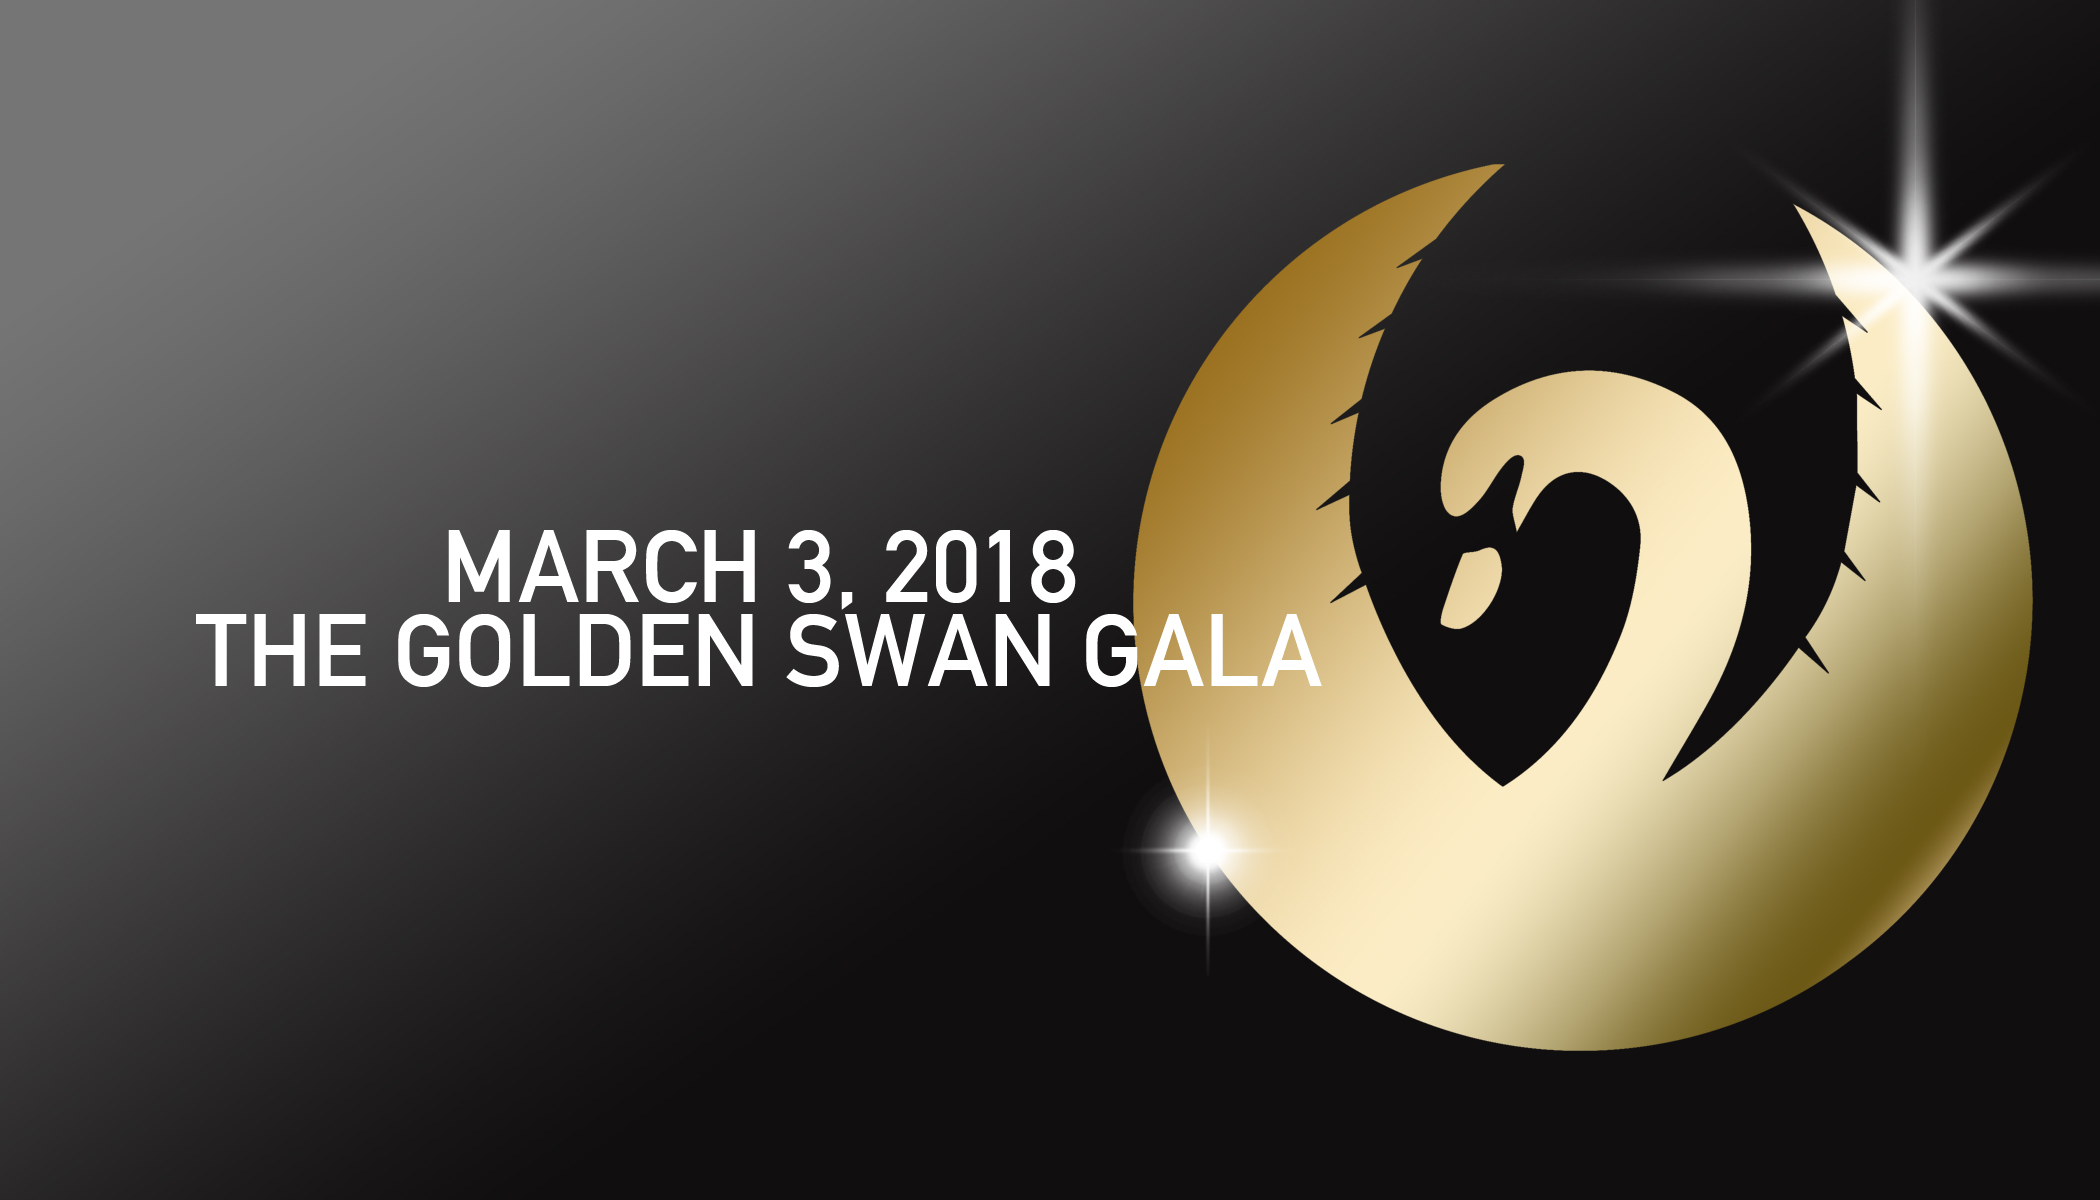 website golden swan gala phoenix ballet.jpg